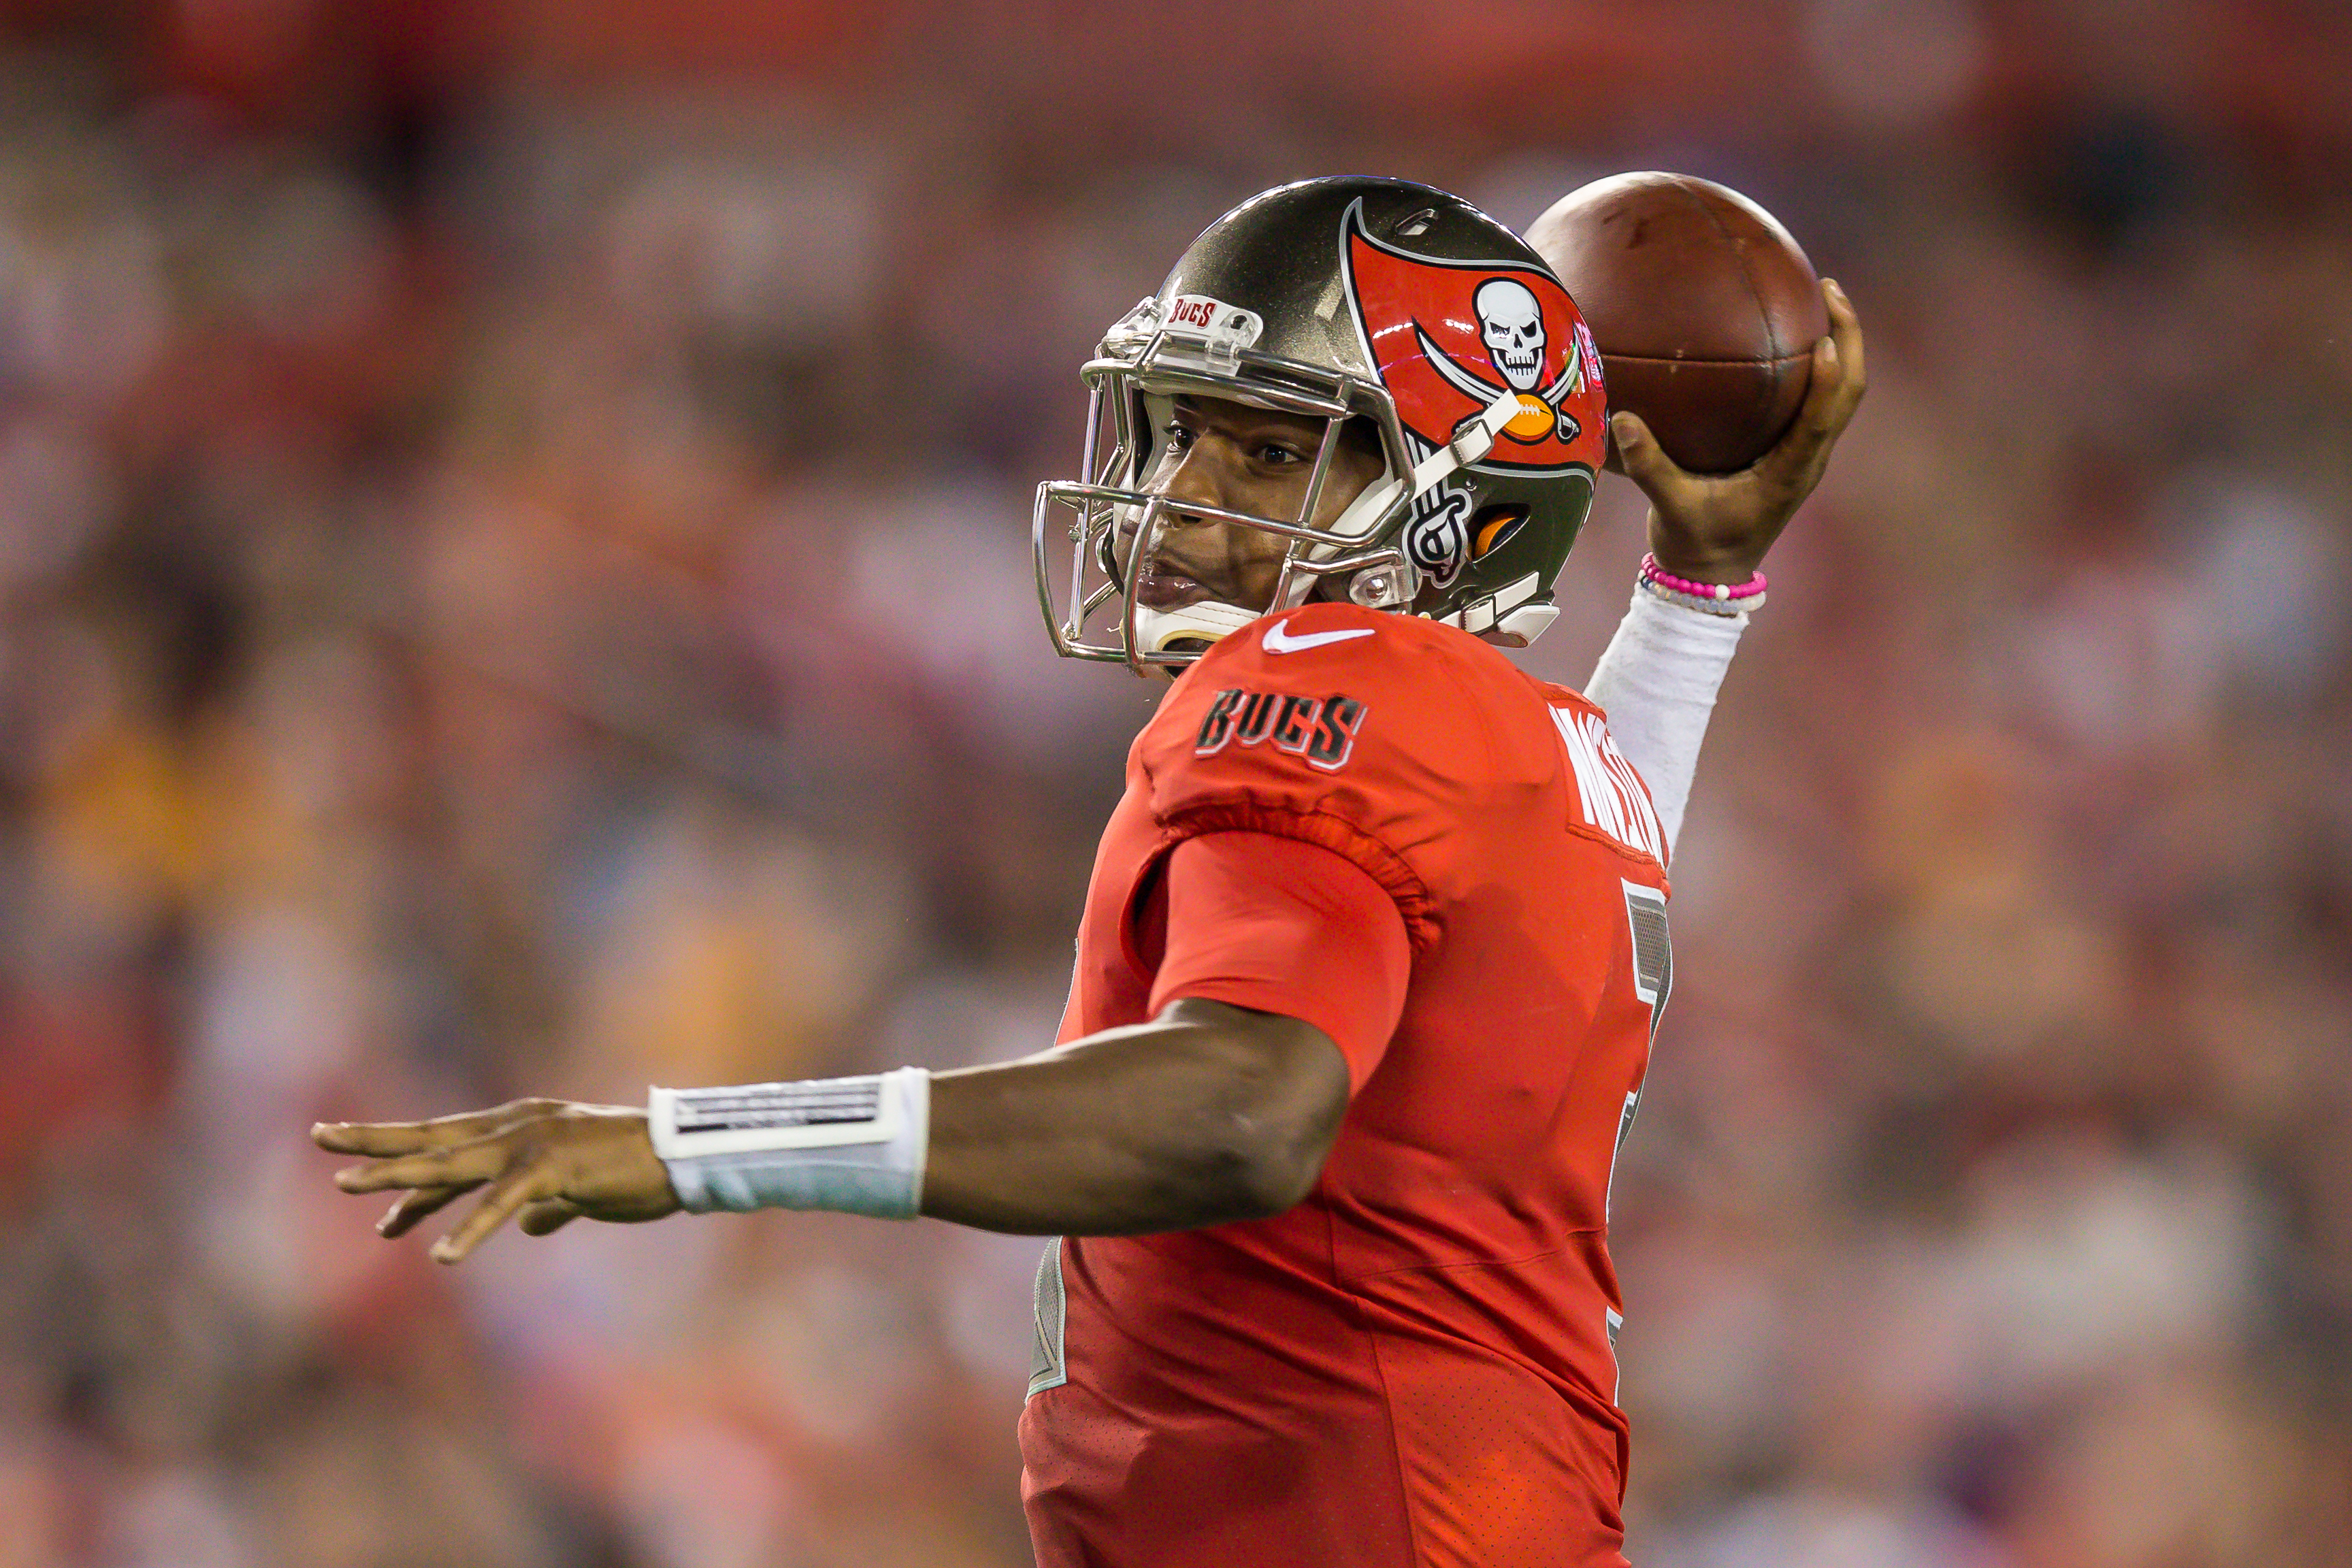 The Bucs depended on Winston to save them from losses too often../TRAVIS PENDERGRASS